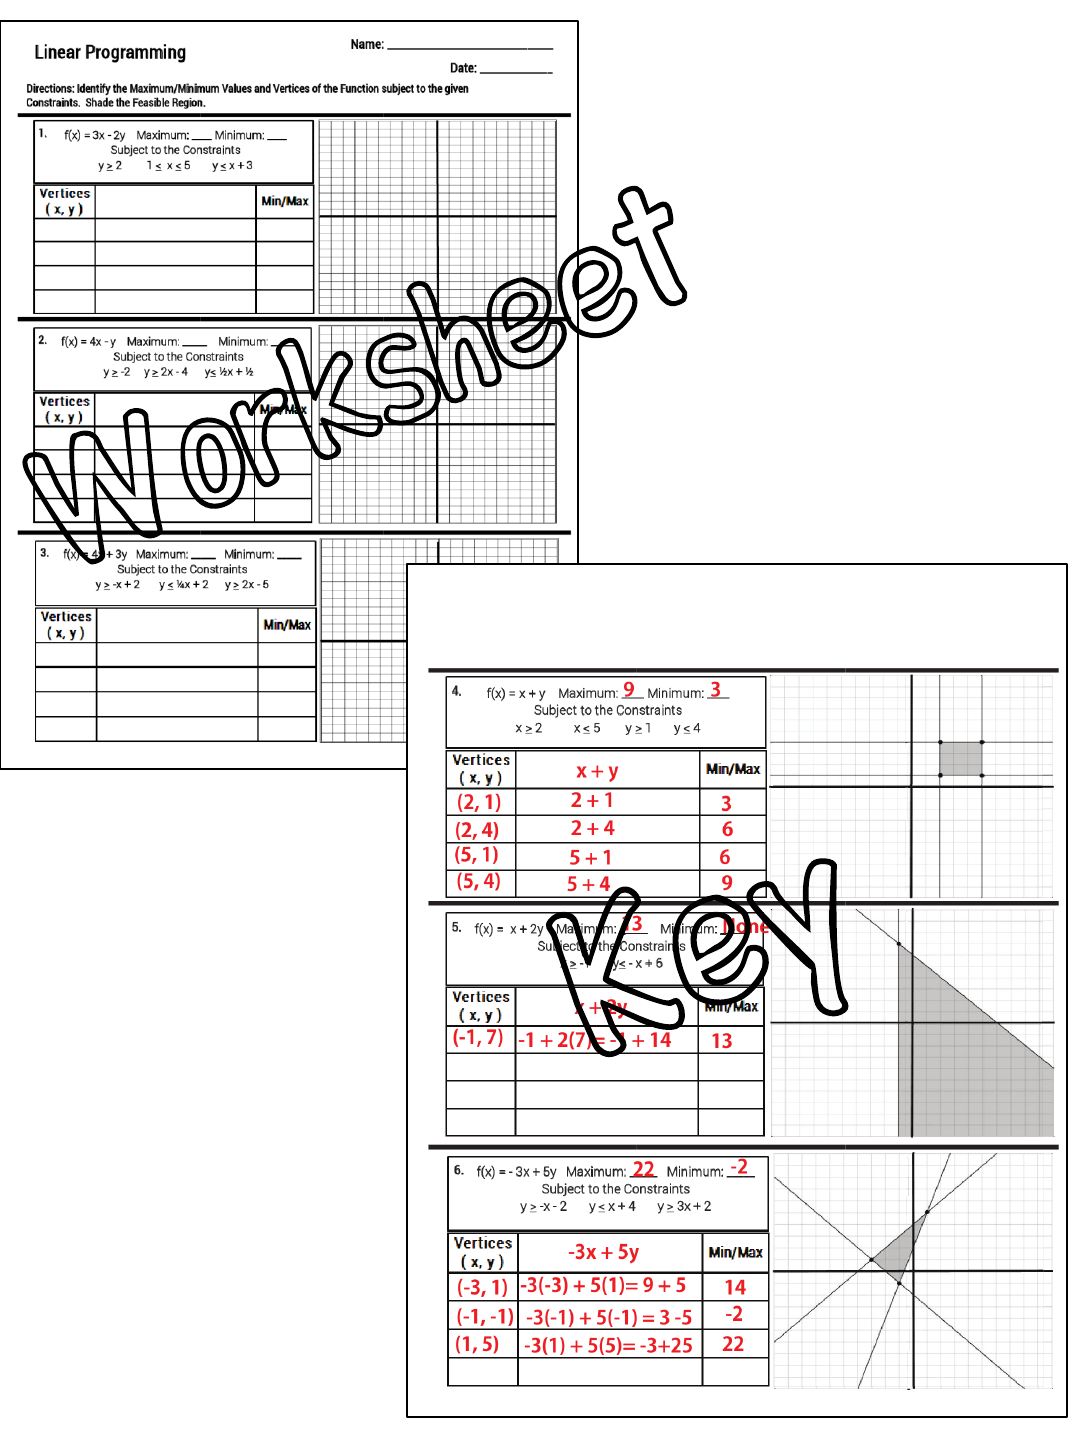 Linear Programming Worksheet With Answers Worksheets for all ...